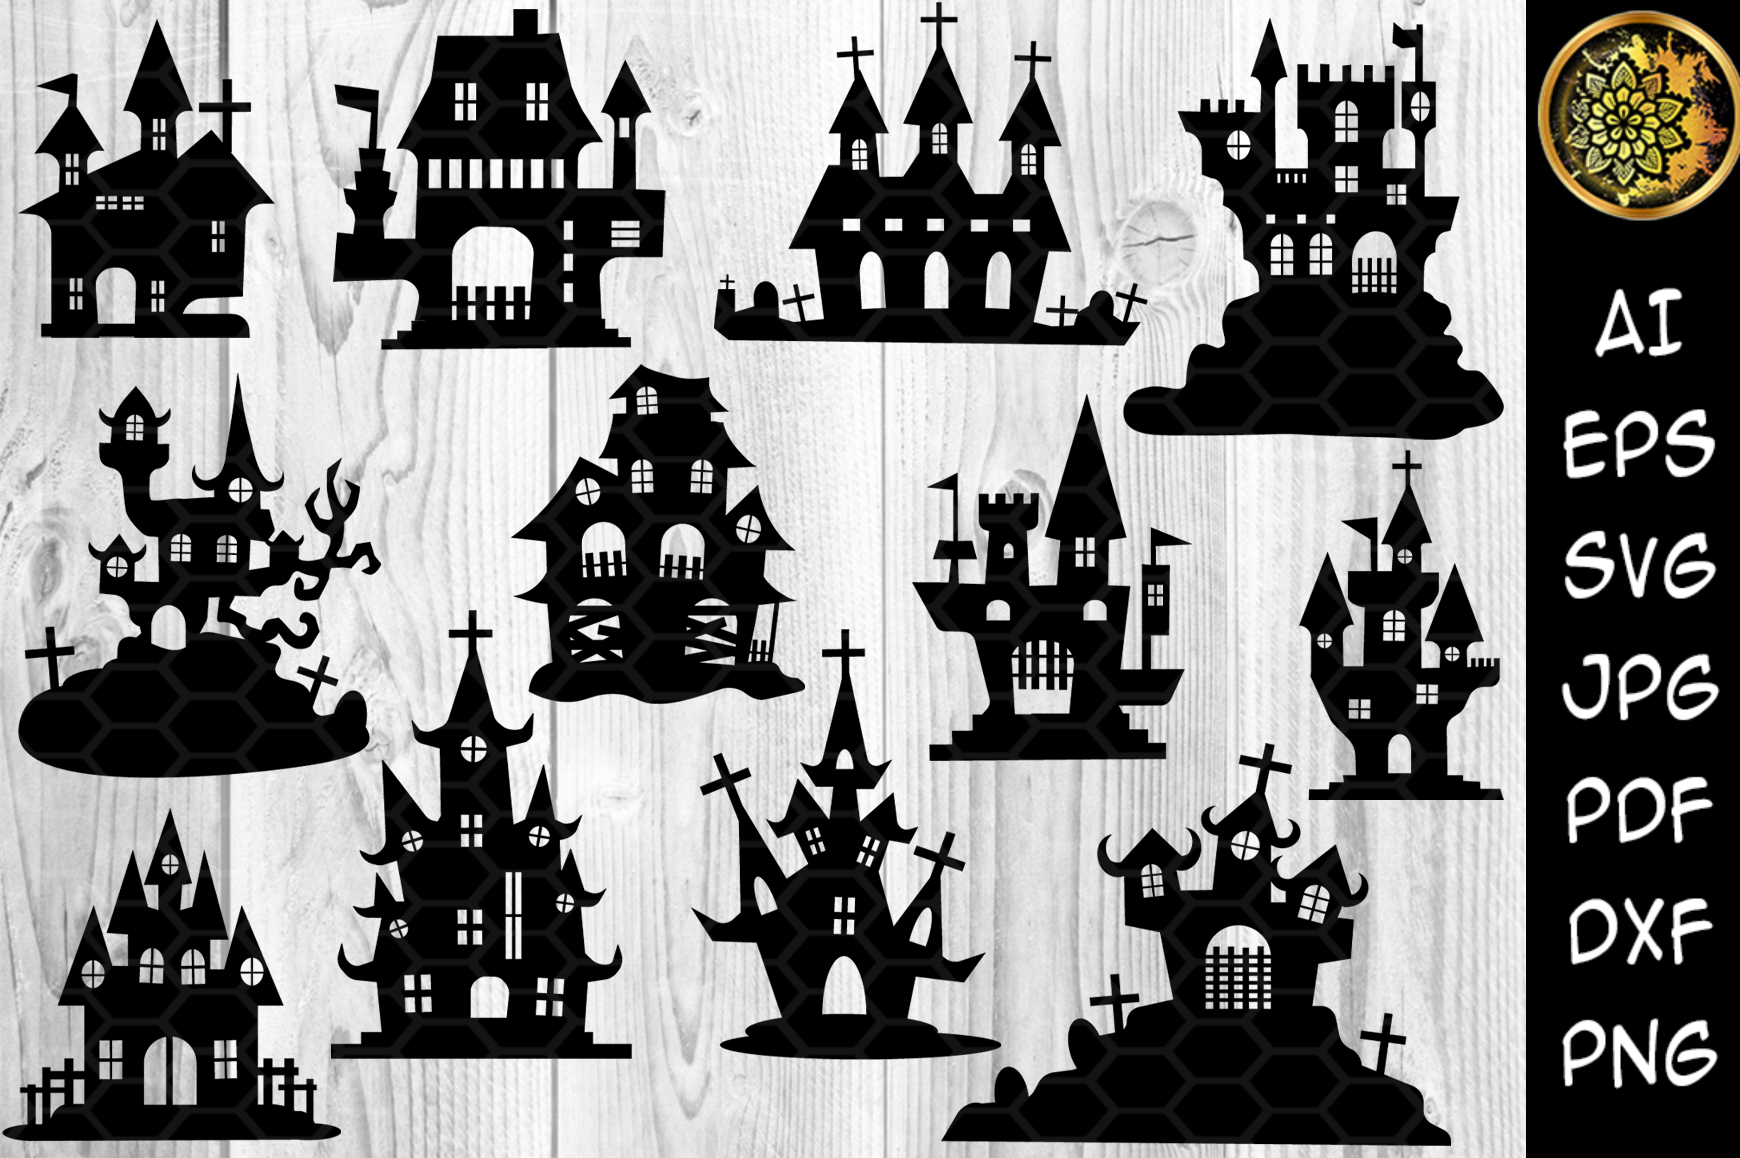 Halloween Haunted House Silhouette Svg Graphic By V Design Creator Creative Fabrica